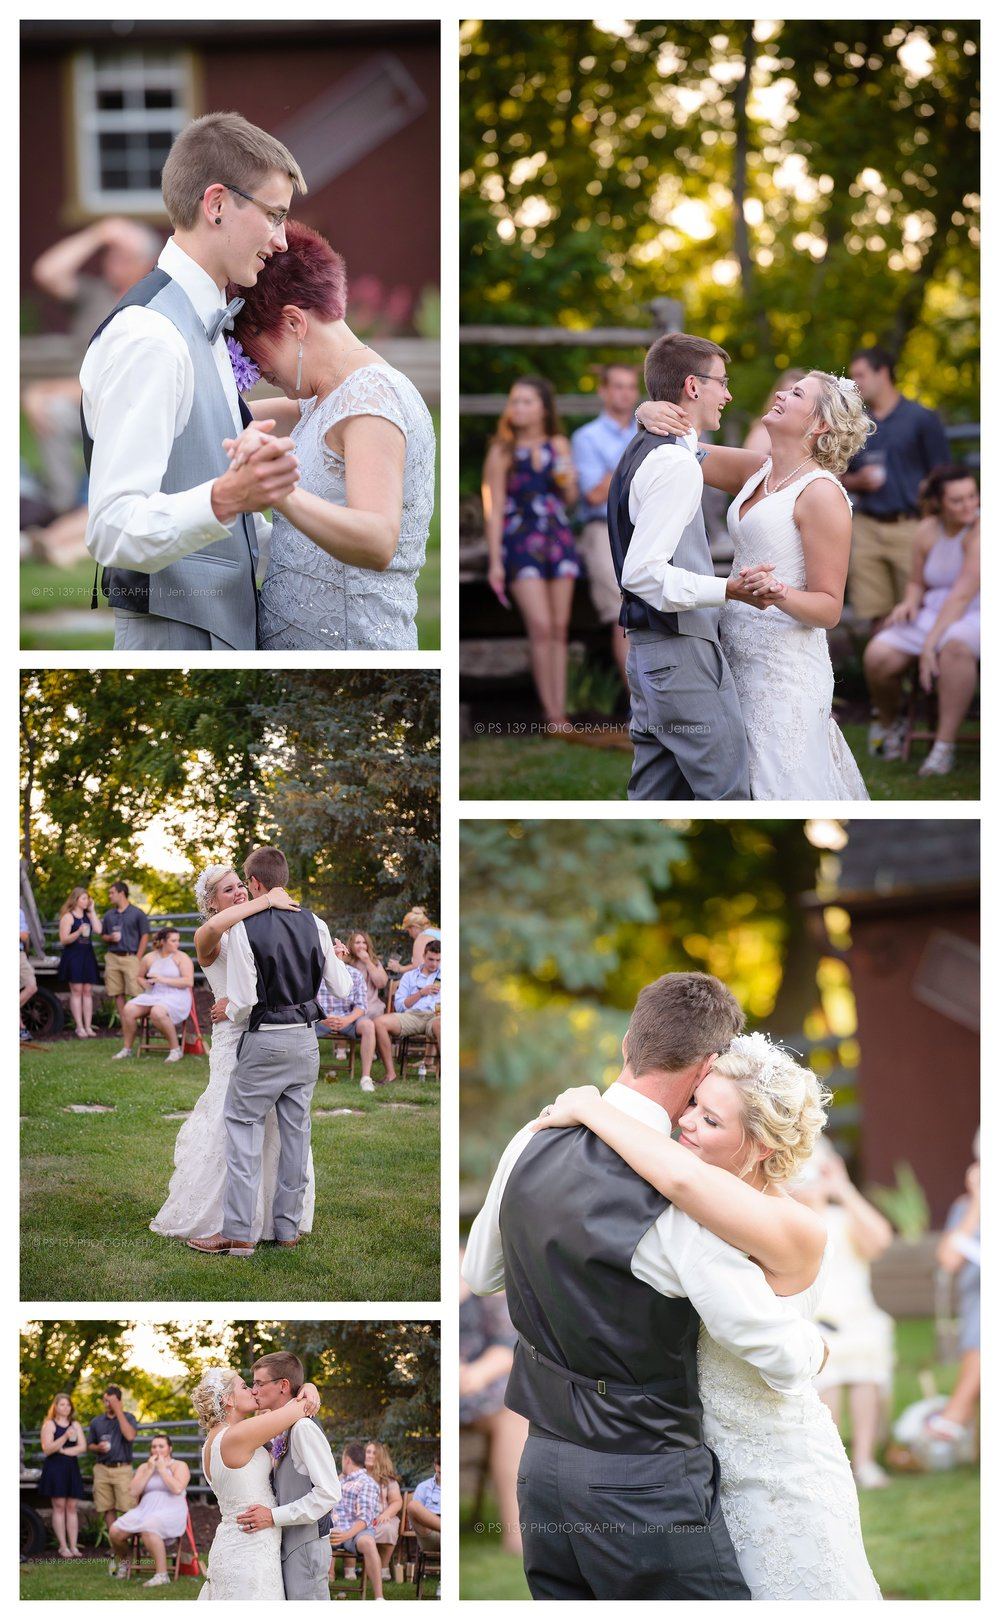 oregon Illinois oak lane farm wisconsin wedding photographer bayfield wi ps 139 photography jen jensen_0249.jpg